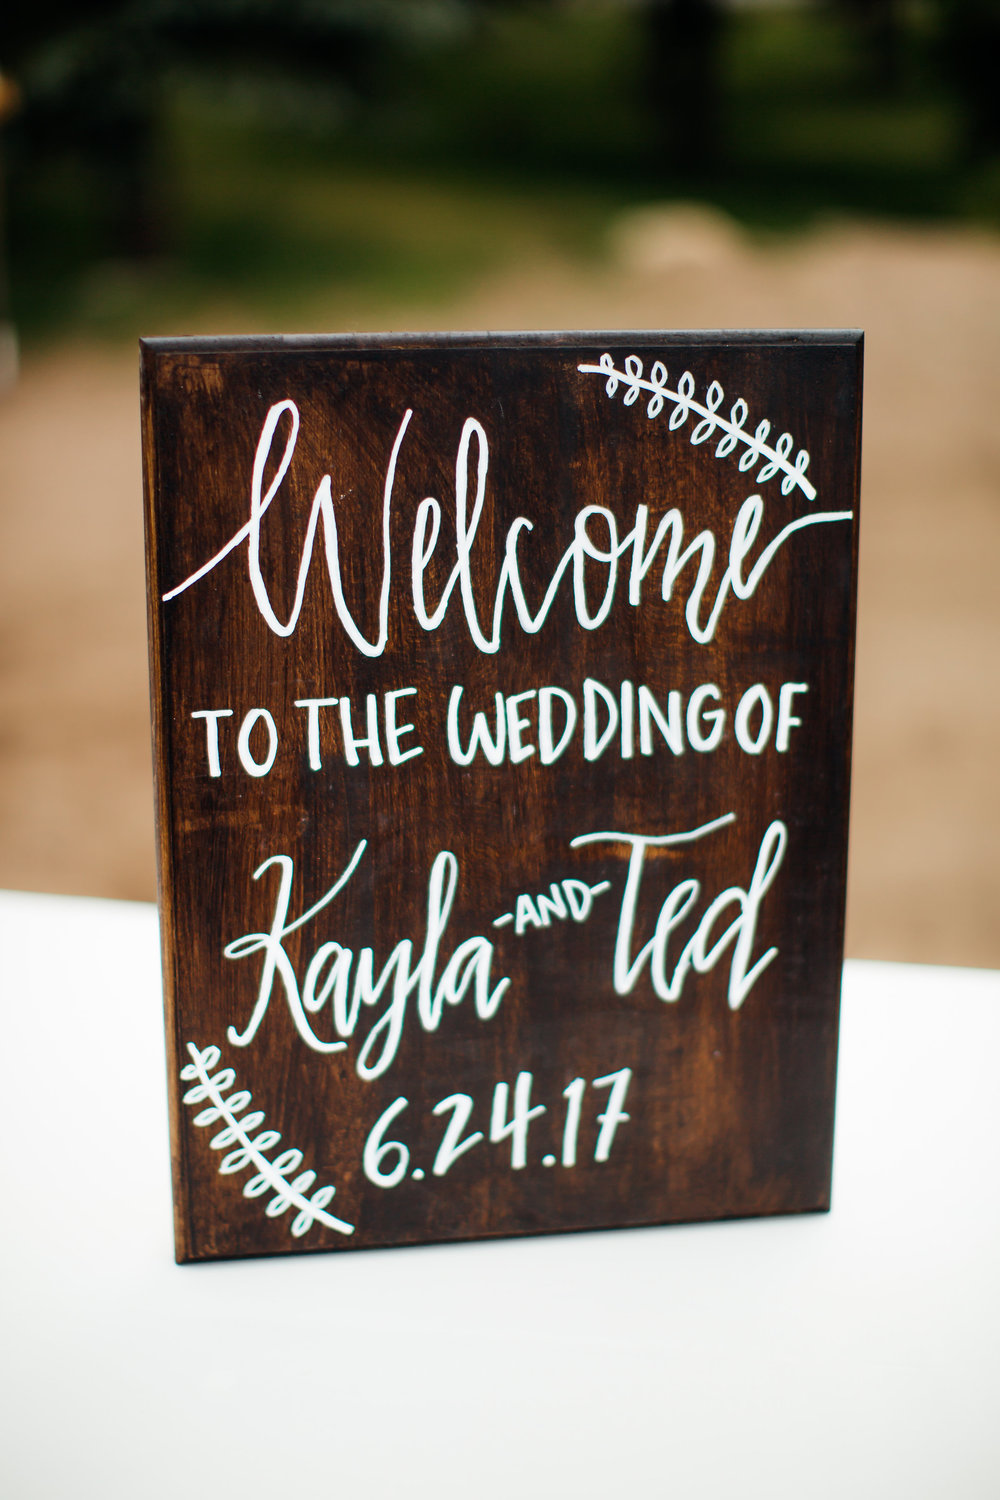 Kayla_Ted_Reception-4.jpg